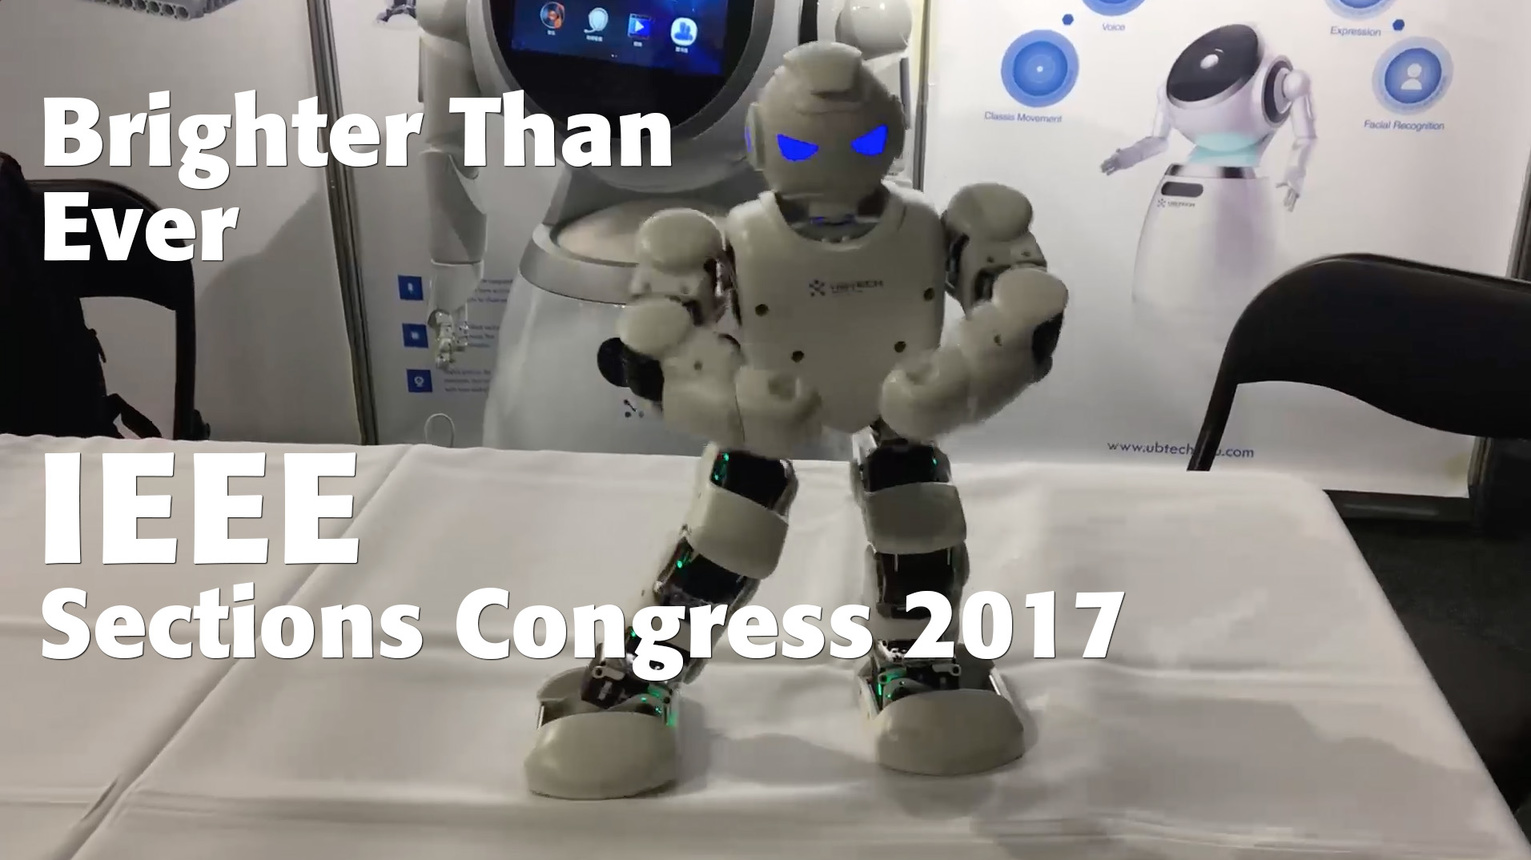 IEEE, Brighter Than Ever: Sections Congress 2017 Recap